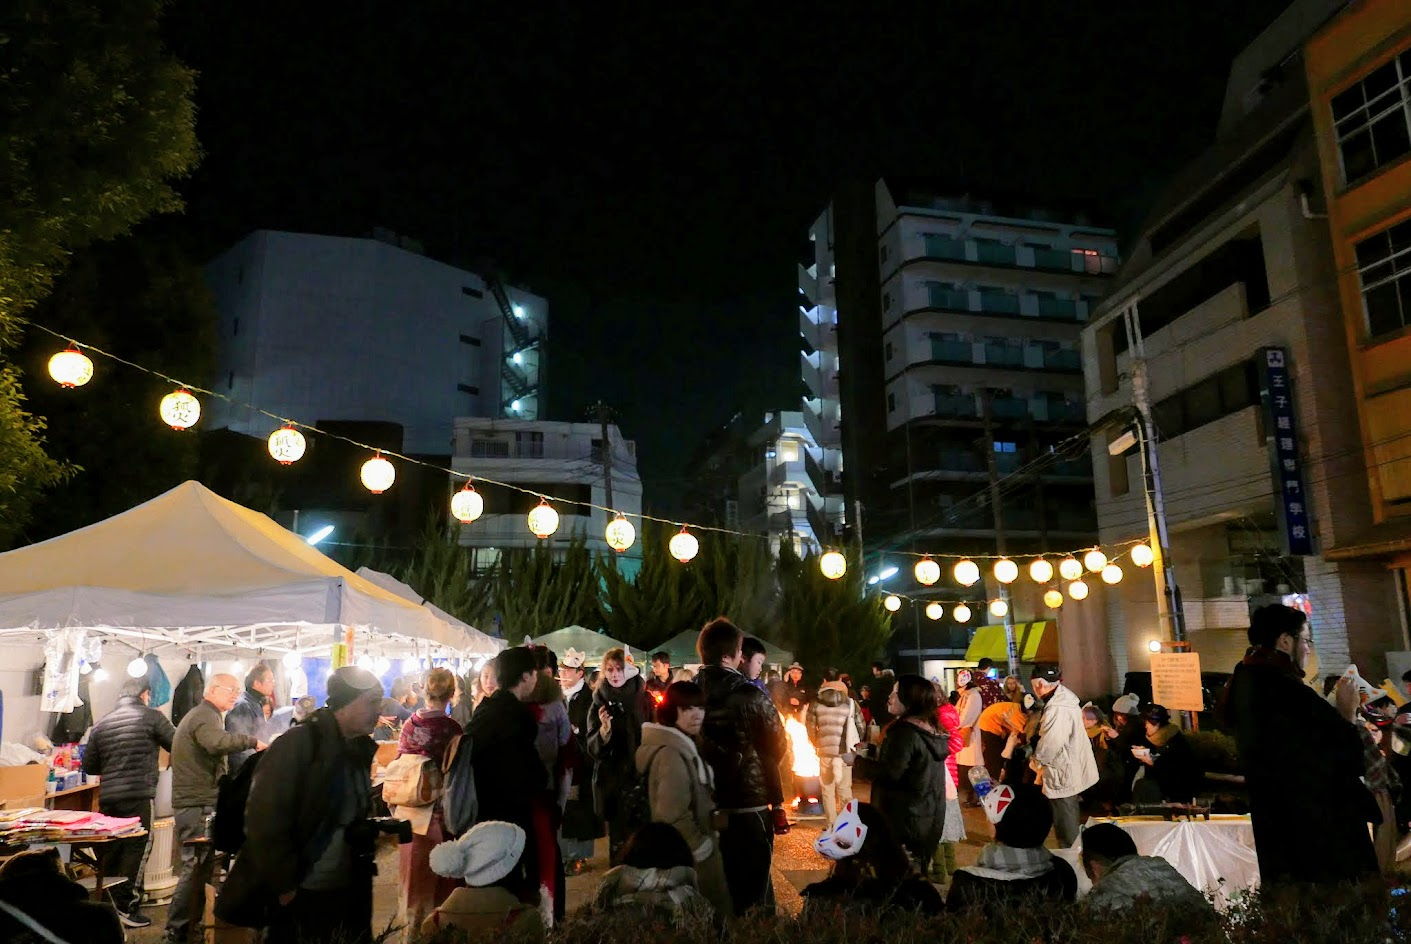 Even at 8 PM on NYE, there are already plenty of people gathered around the bonfire at Oji Inari-Jinja Shrine where there is sake and snacks too. Lots of fox masks! This is the endpoint for the Oji Kitsune-no-gyorestu Fox Parade.